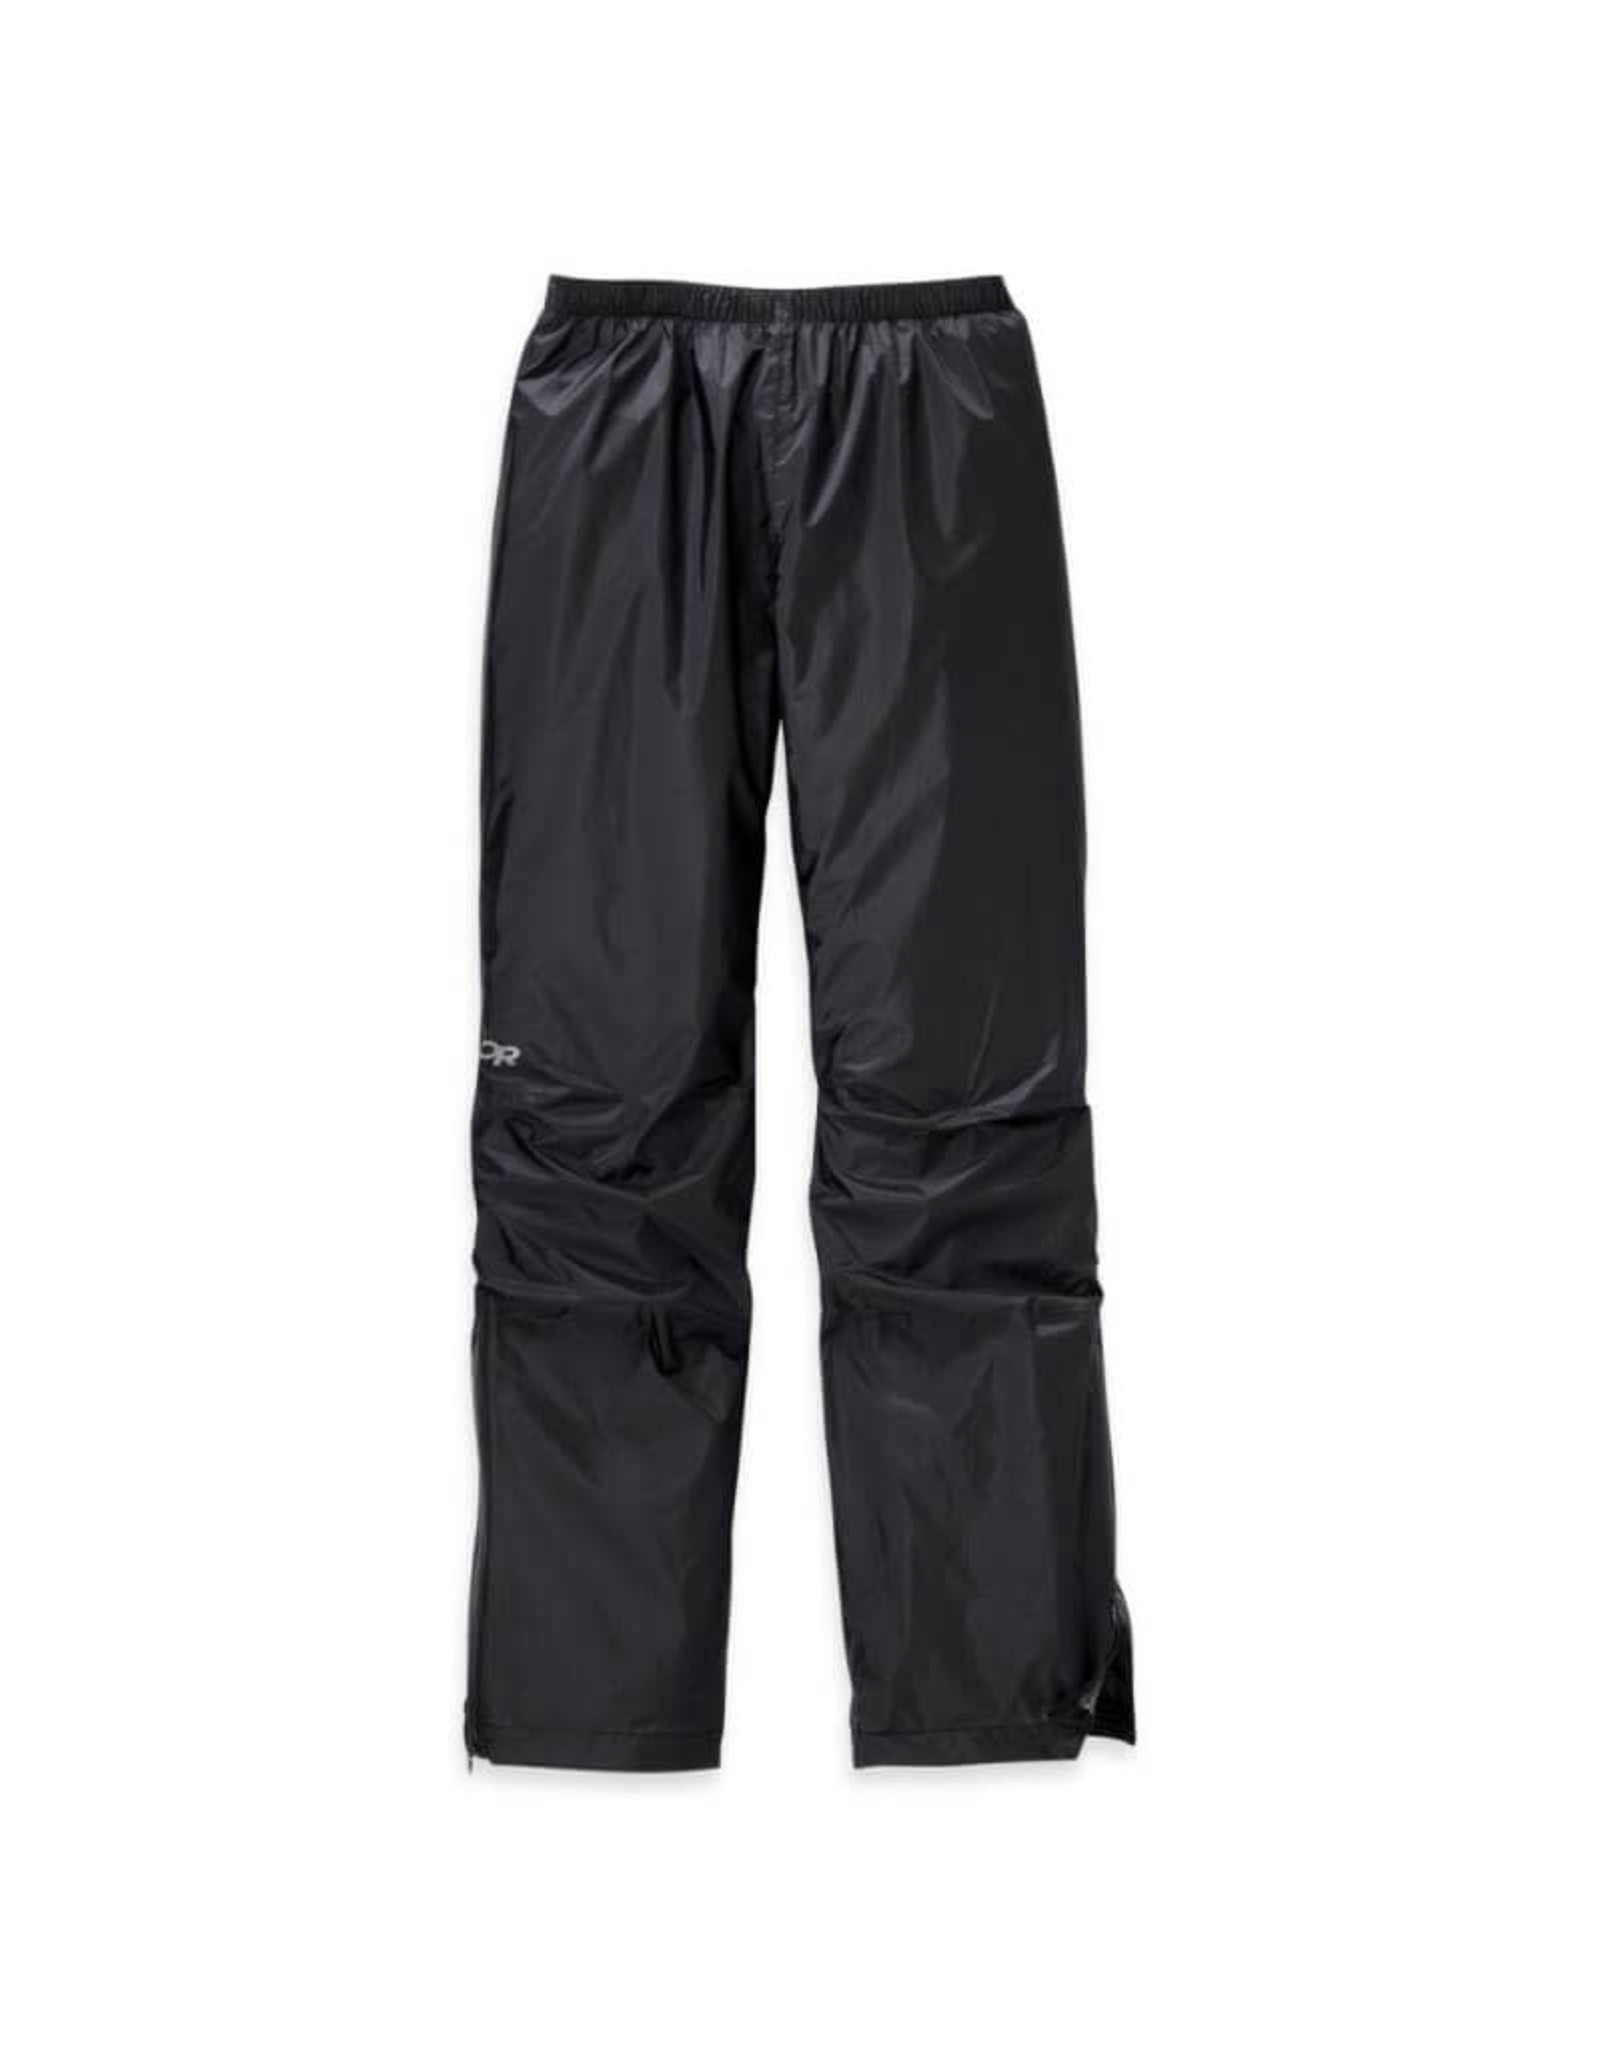 Outdoor Research Outdoor Research Women's Helium Pants